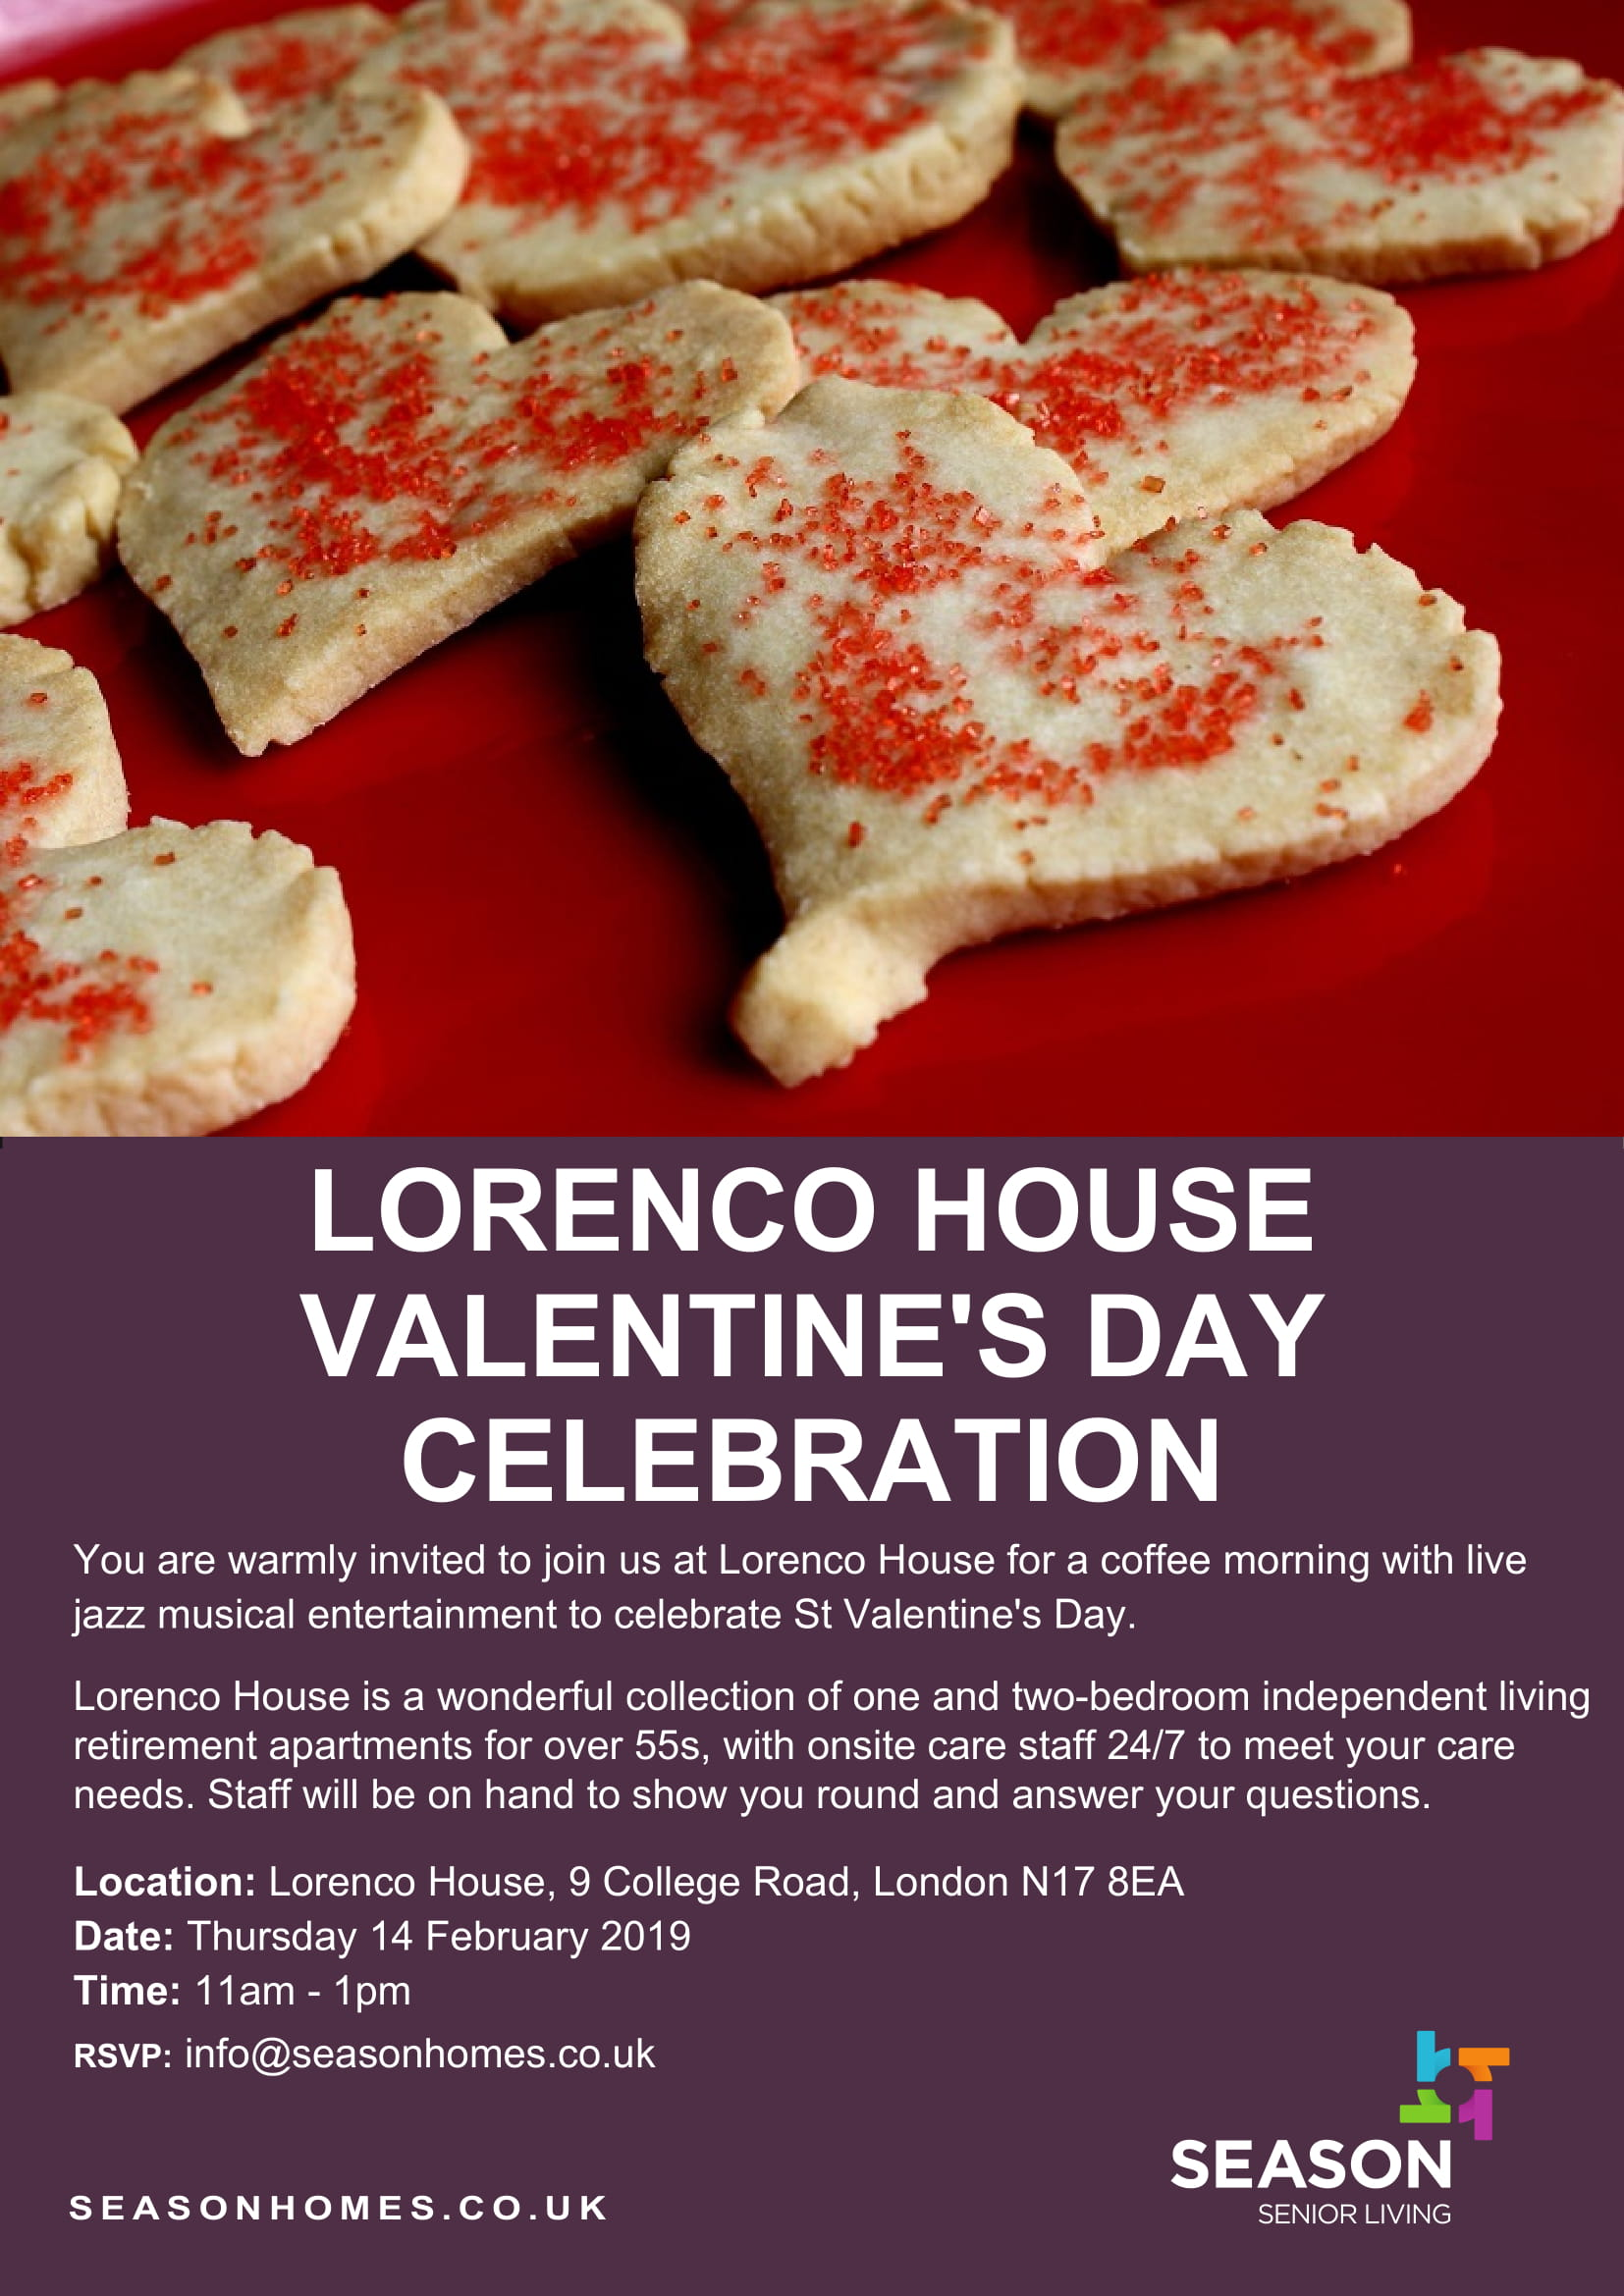 Lorenco House - Valentine's Day celebration